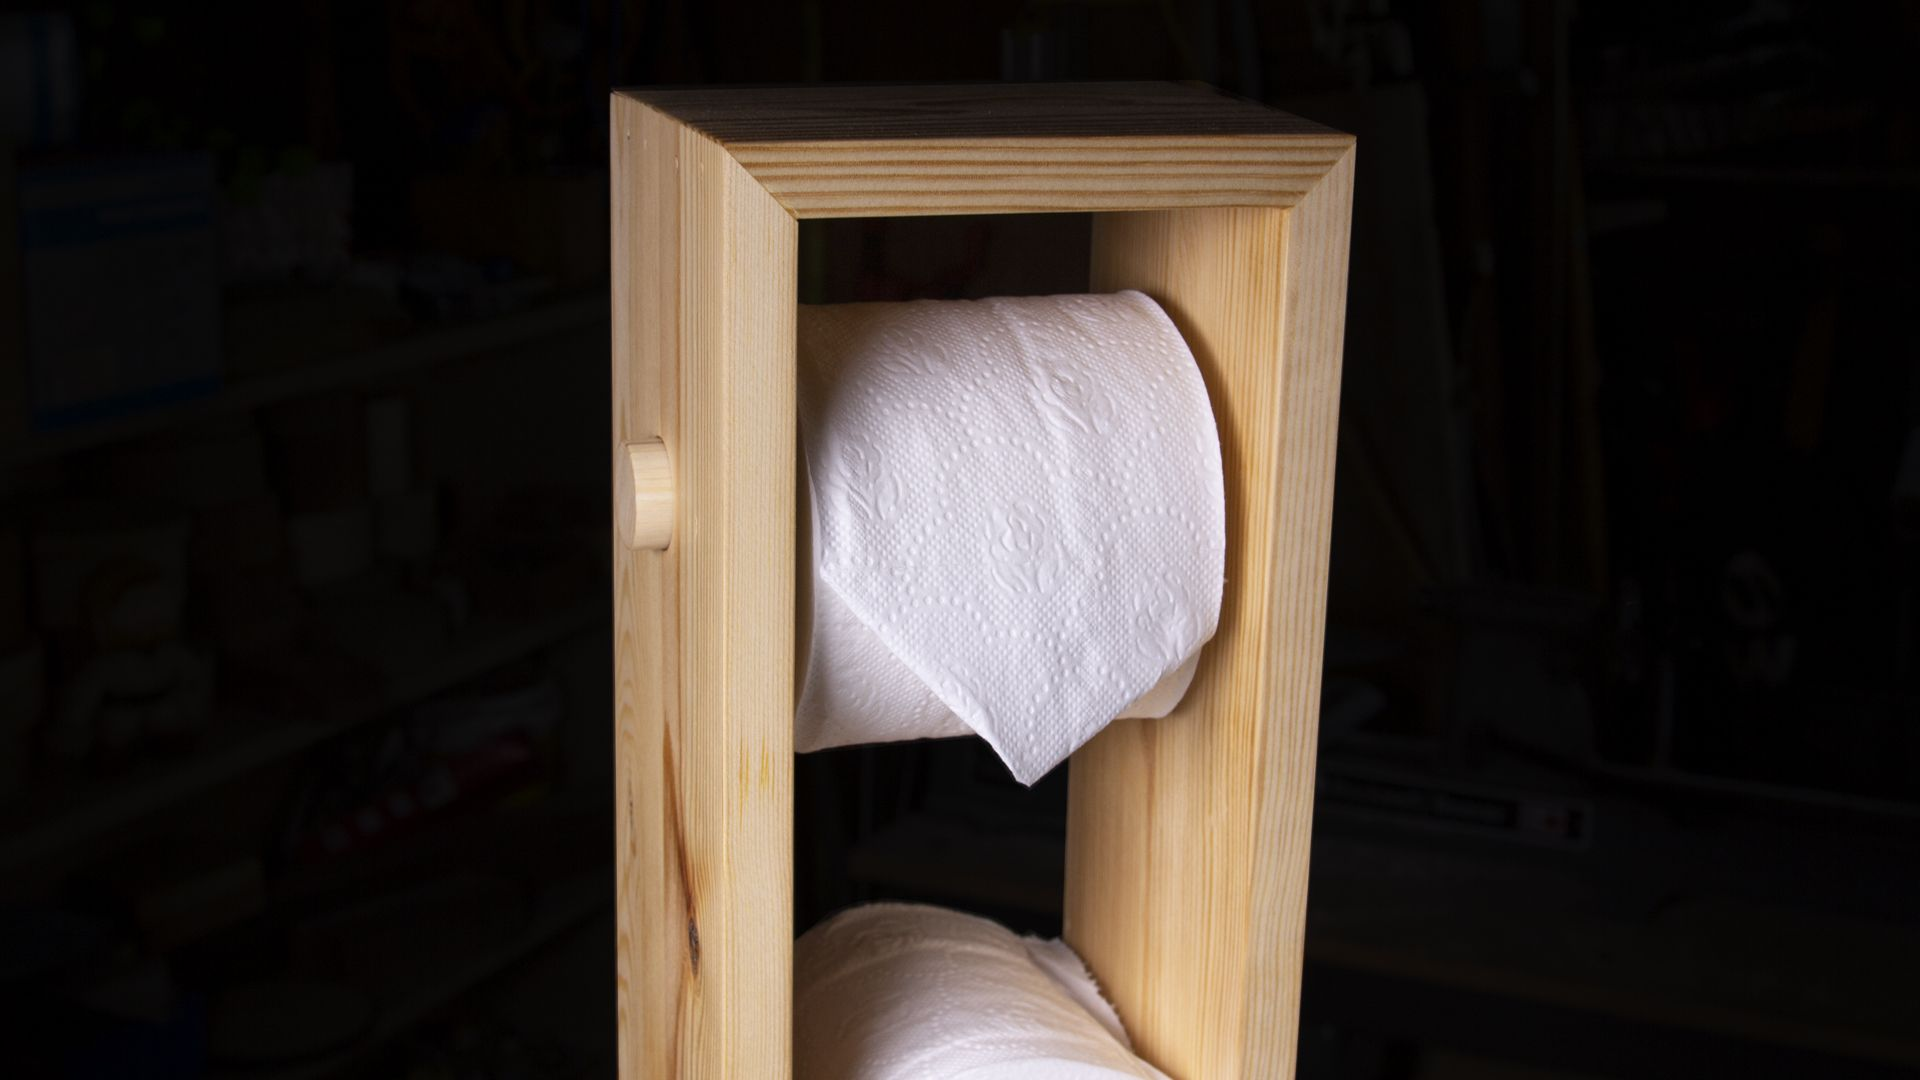 A toilet paper tower made out of scrap pine wood.